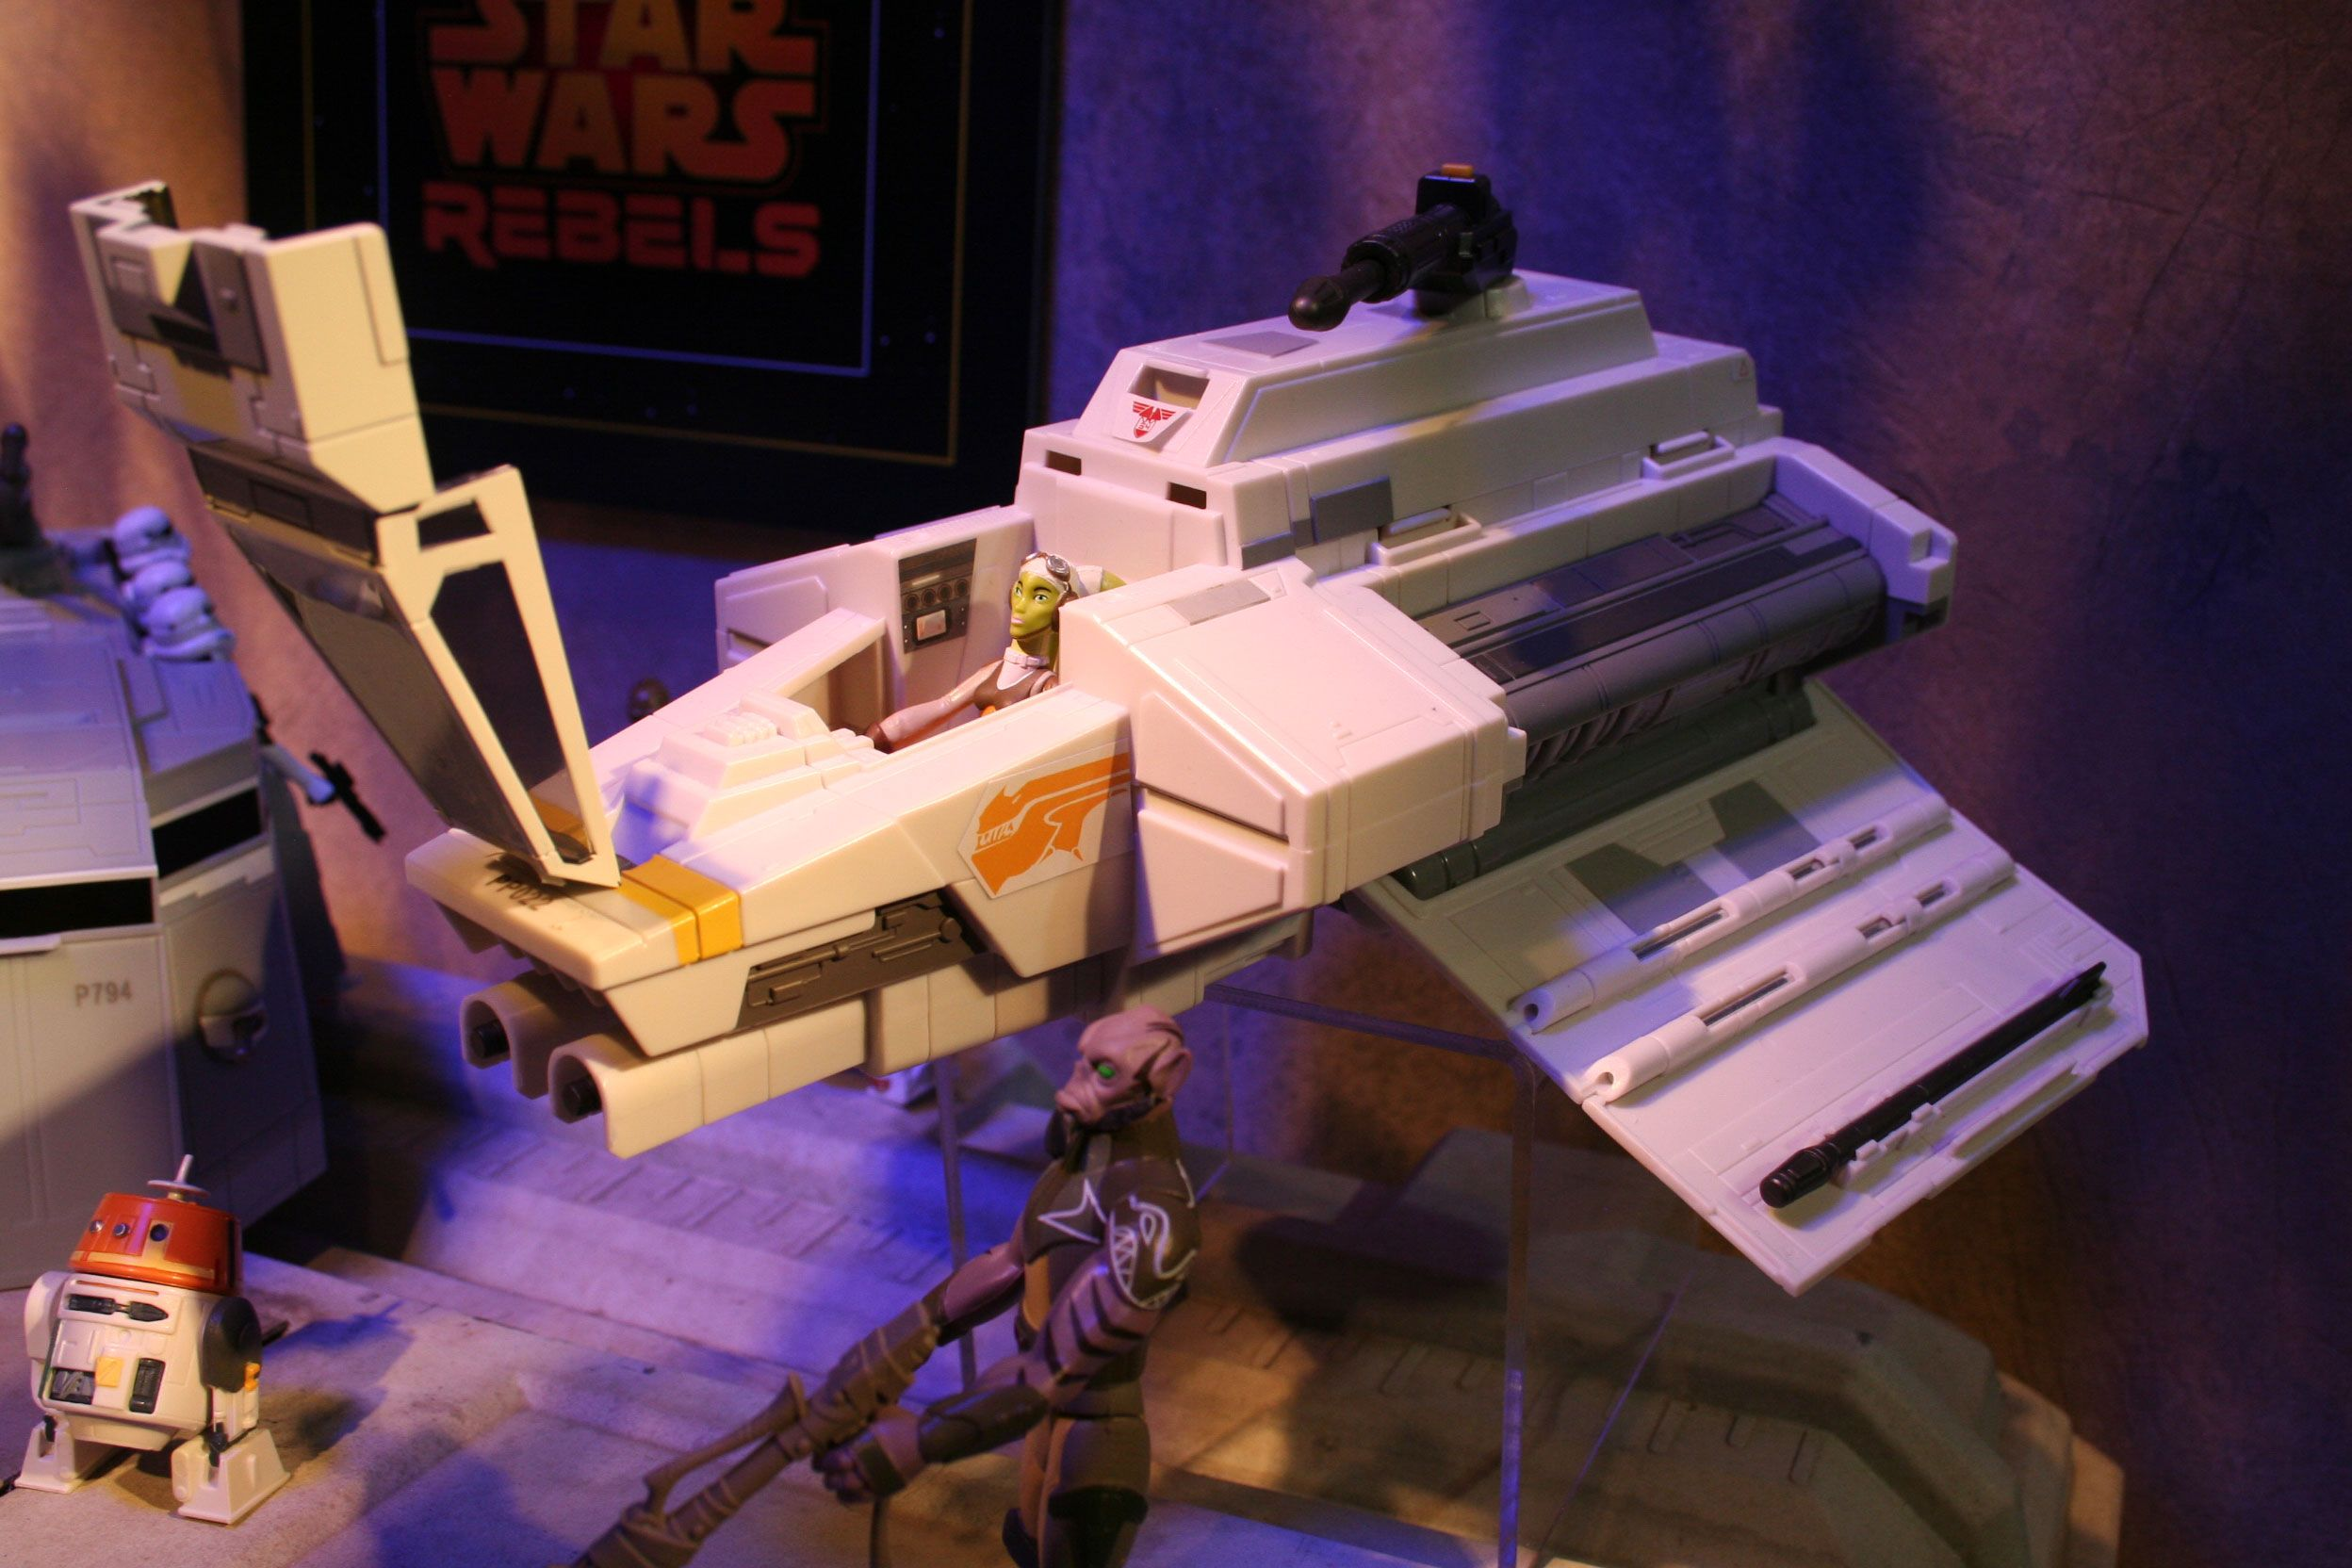 Star Wars Toys Hasbro : Star wars hasbro toys revealed images of bladebuilders